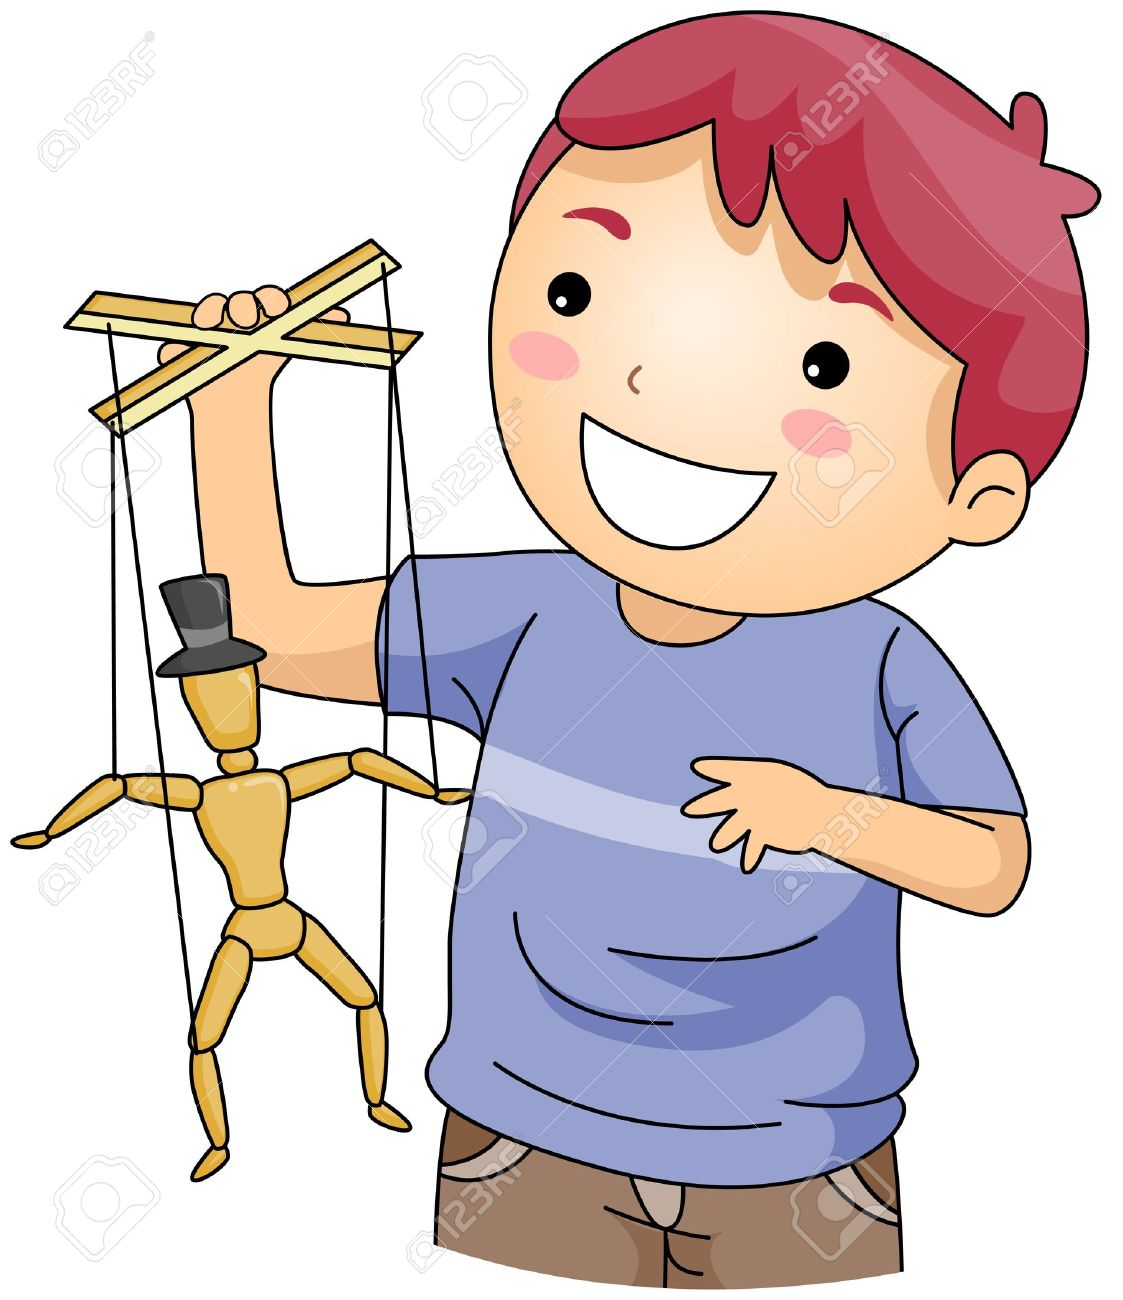 Illustration Of A Young Puppeteer Stock Photo, Picture And Royalty.